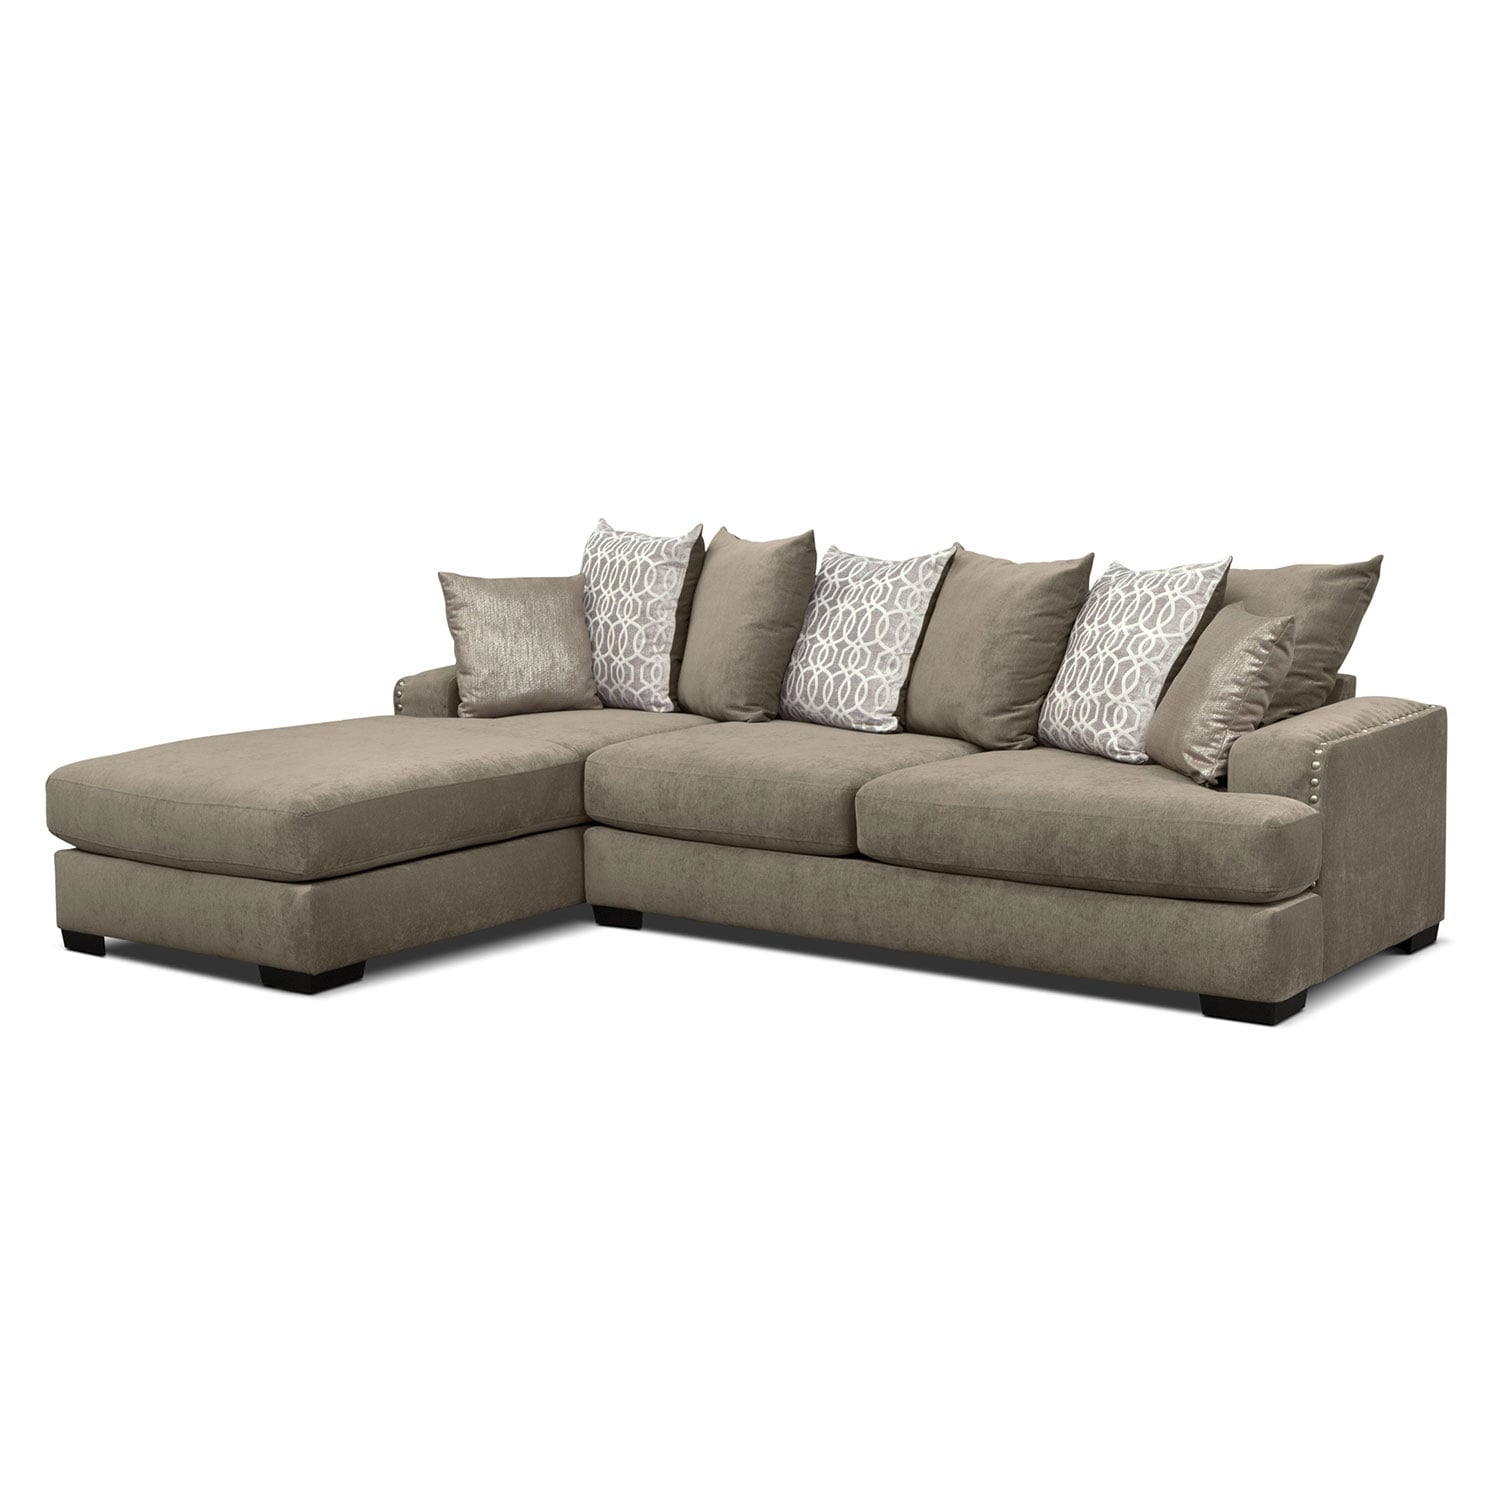 Sectional Living Room Sectional Sofas Value City Funiture Value City Furniture